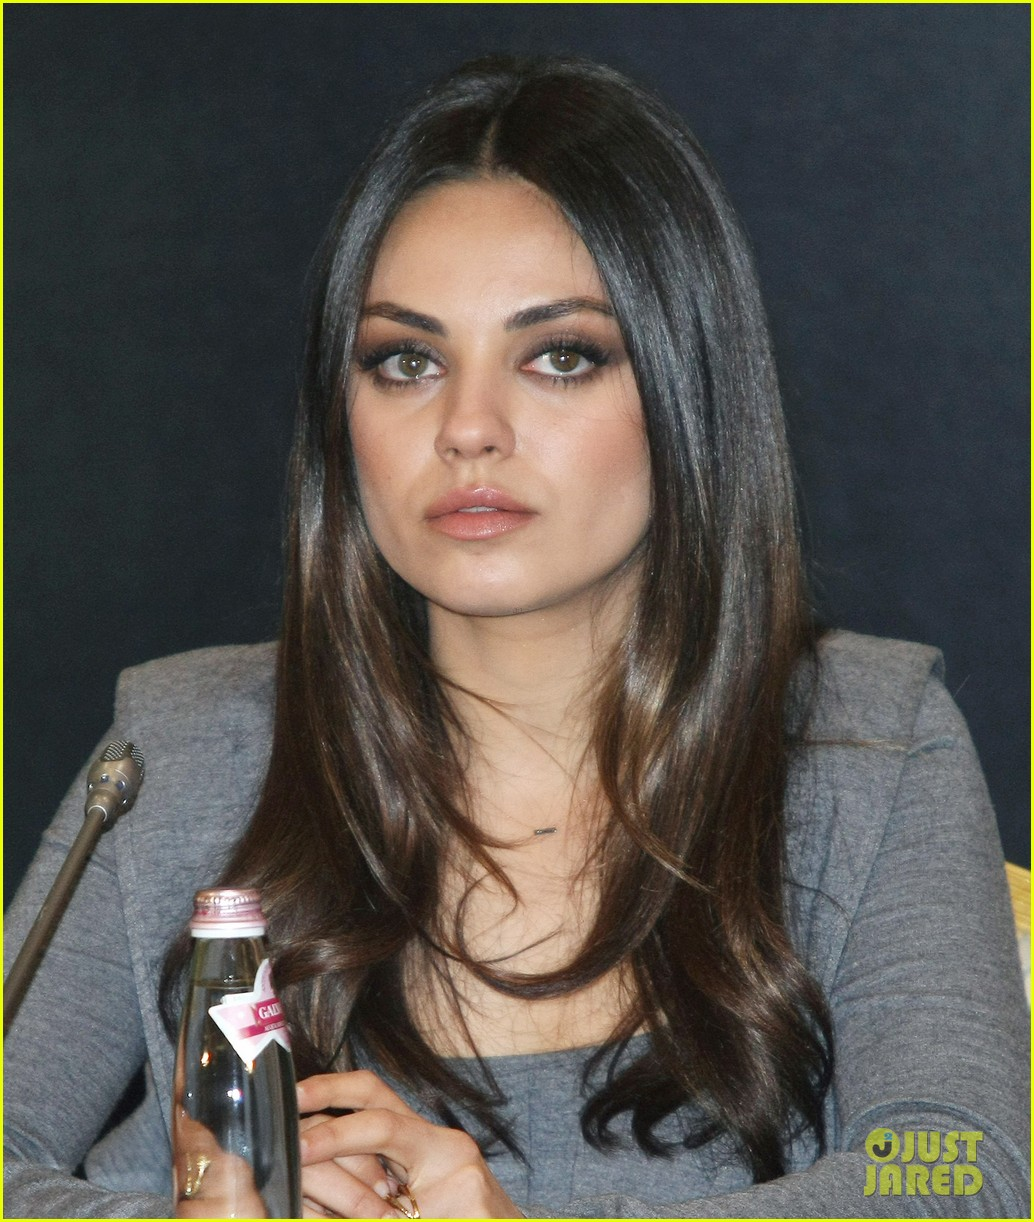 michelle williams mila kunis oz great powerful moscow photo call 02